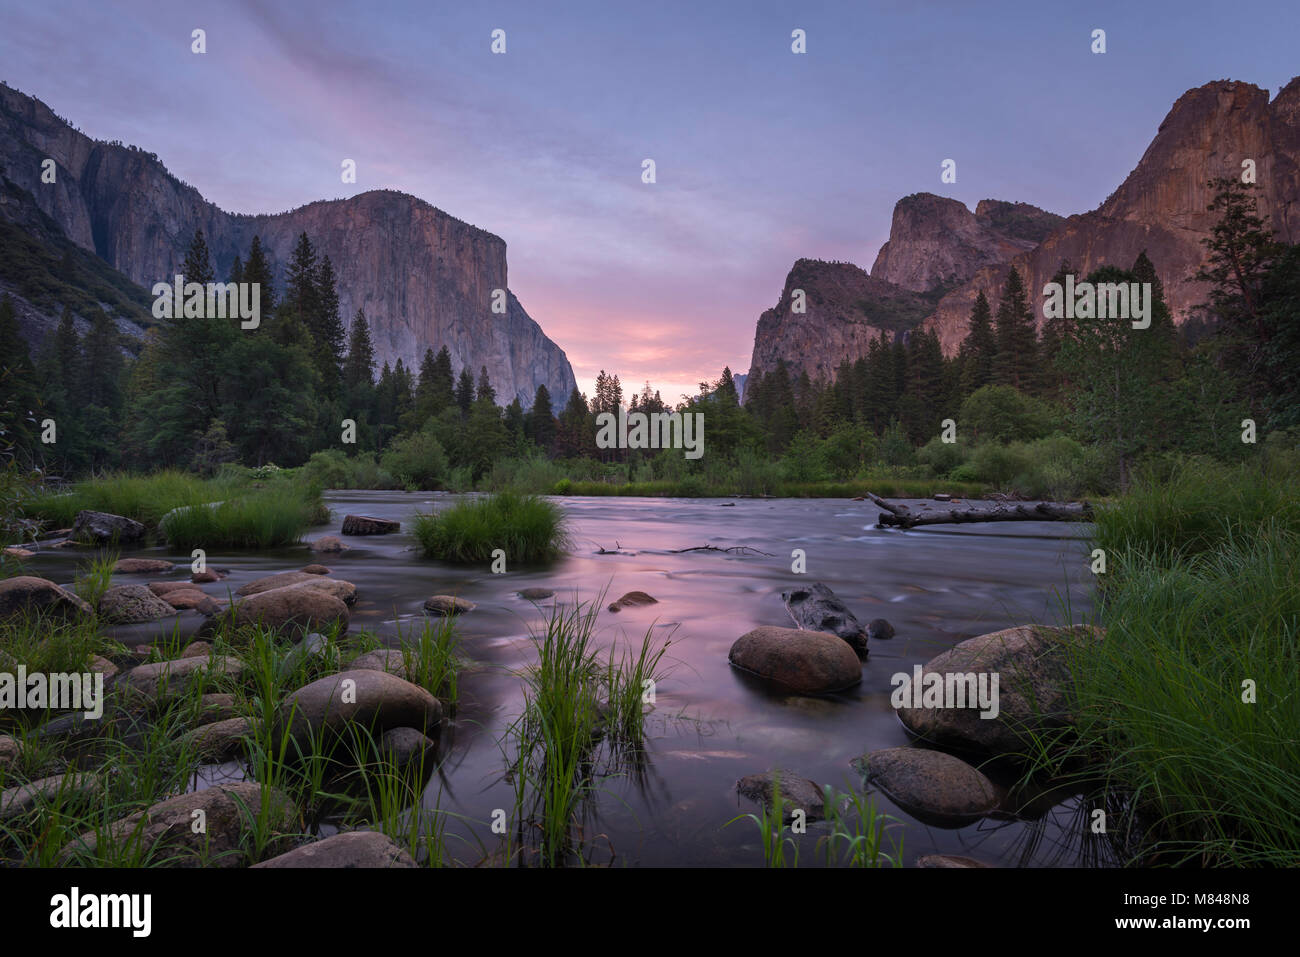 Yosemite Valley and the River Merced at dusk, Yosemite National Park, California, USA. Spring (June) 2015. - Stock Image